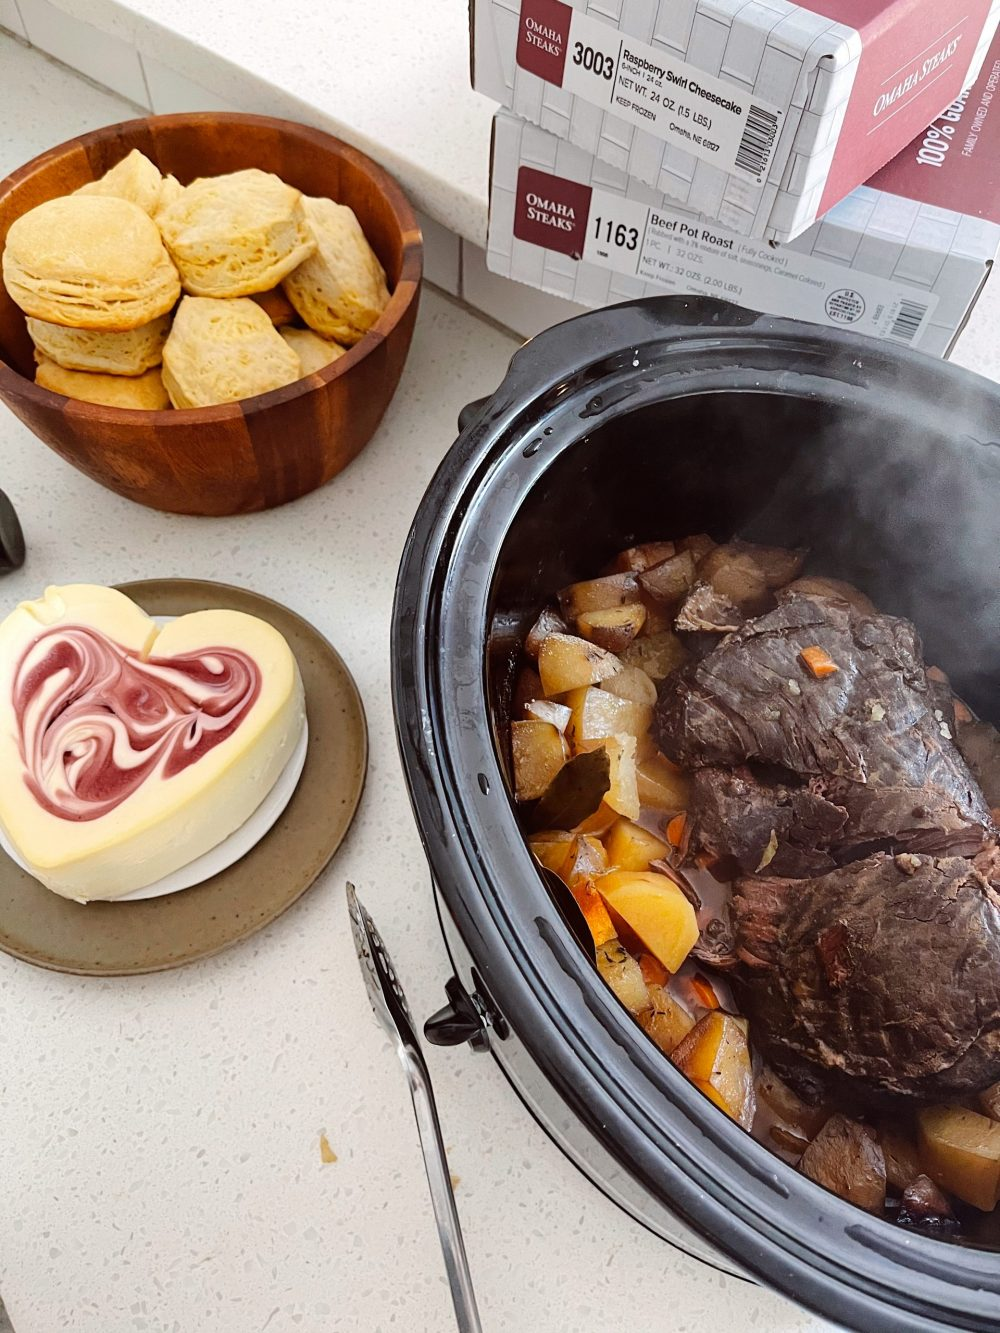 Omaha Steaks Meals featured by top FL lifestyle blogger, Tabitha Blue of Fresh Mommy Blog. - Pot Roast | Omaha Steaks Meals by popular Florida lifestyle blog, Fresh Mommy Blog: image of slow cooker pot roast next to a wooden bowl filled with biscuits and a heart shaped cheese cake.